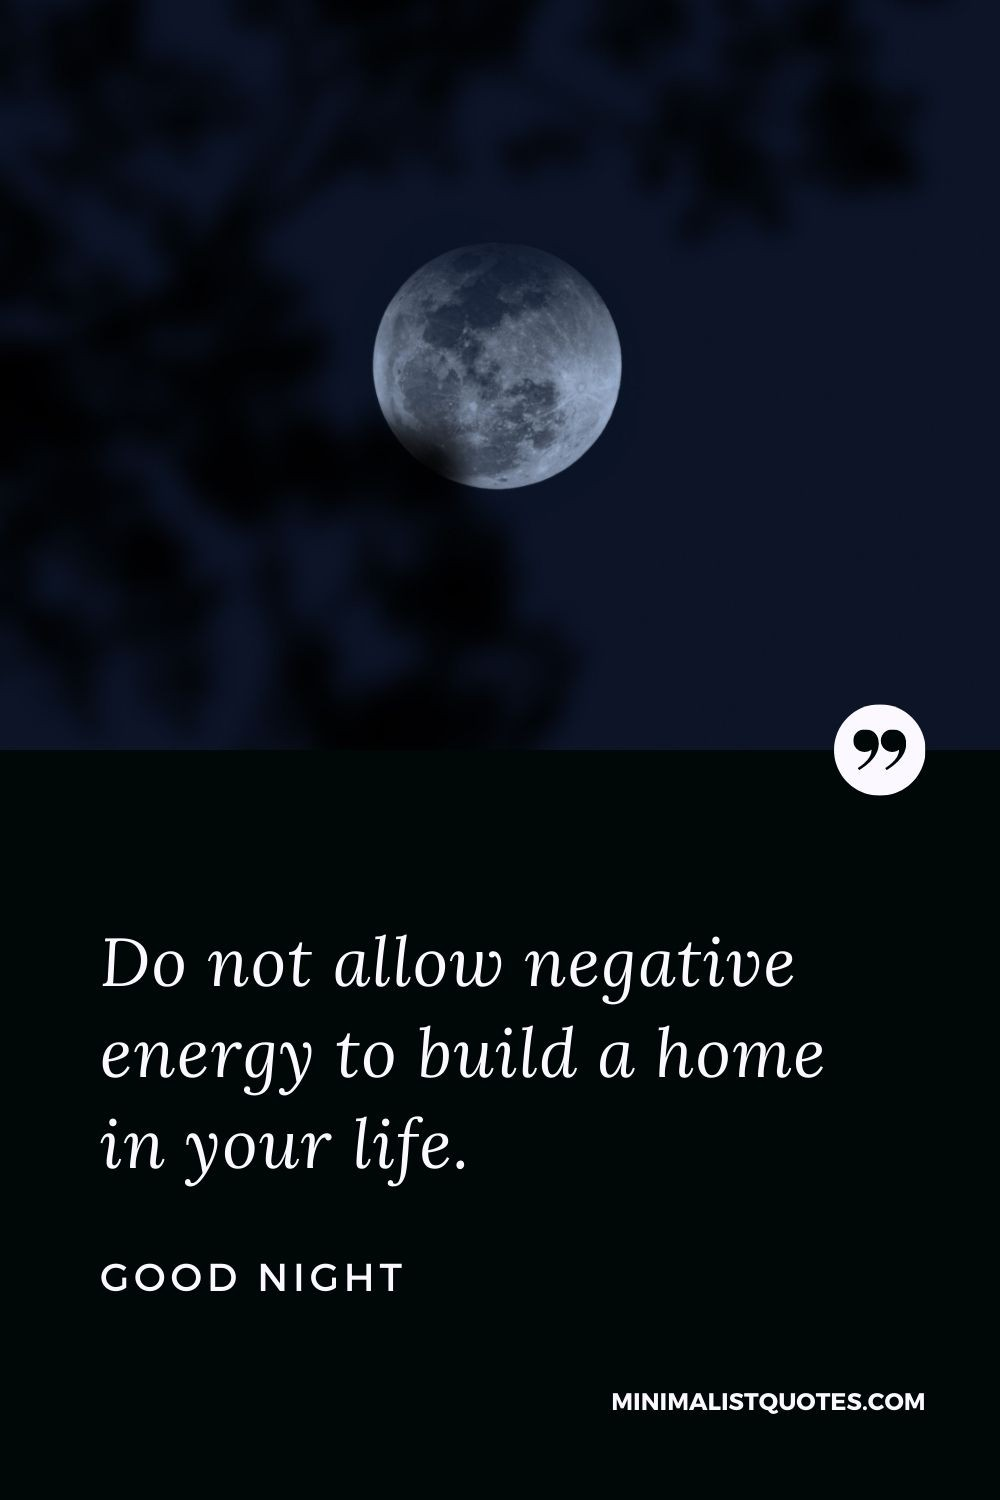 Good Night Wishes - Do not allow negative energy to build a home in your life.